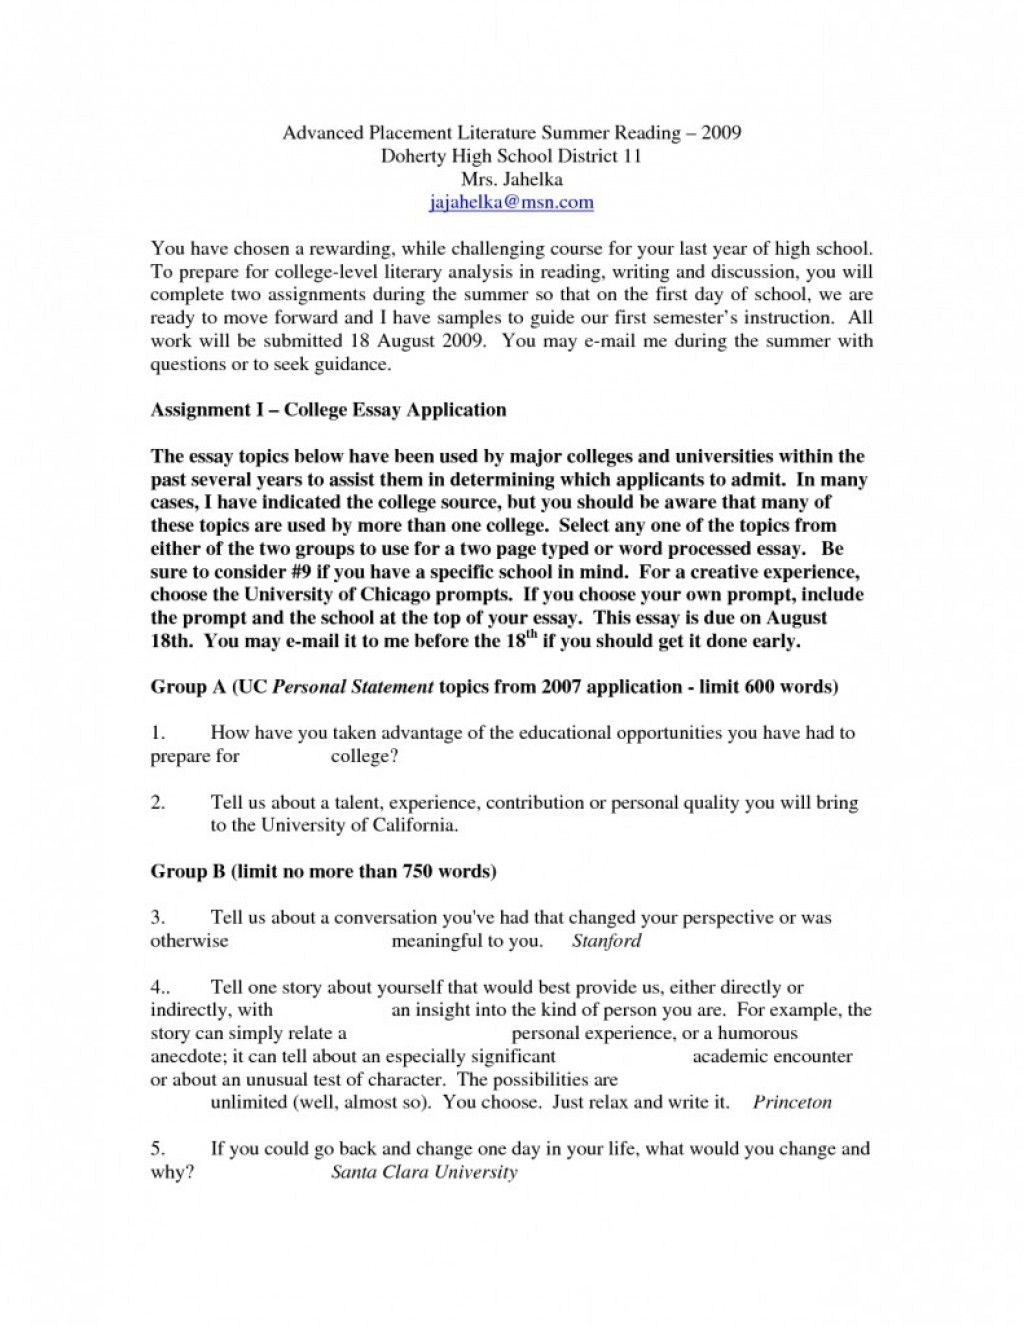 006 Essay Example How To Write The Perfect College Application Term Paper Writing Service Tips For High School Samples Cover Letter Reading Teacher Staggering A Good Nytimes Examples Large